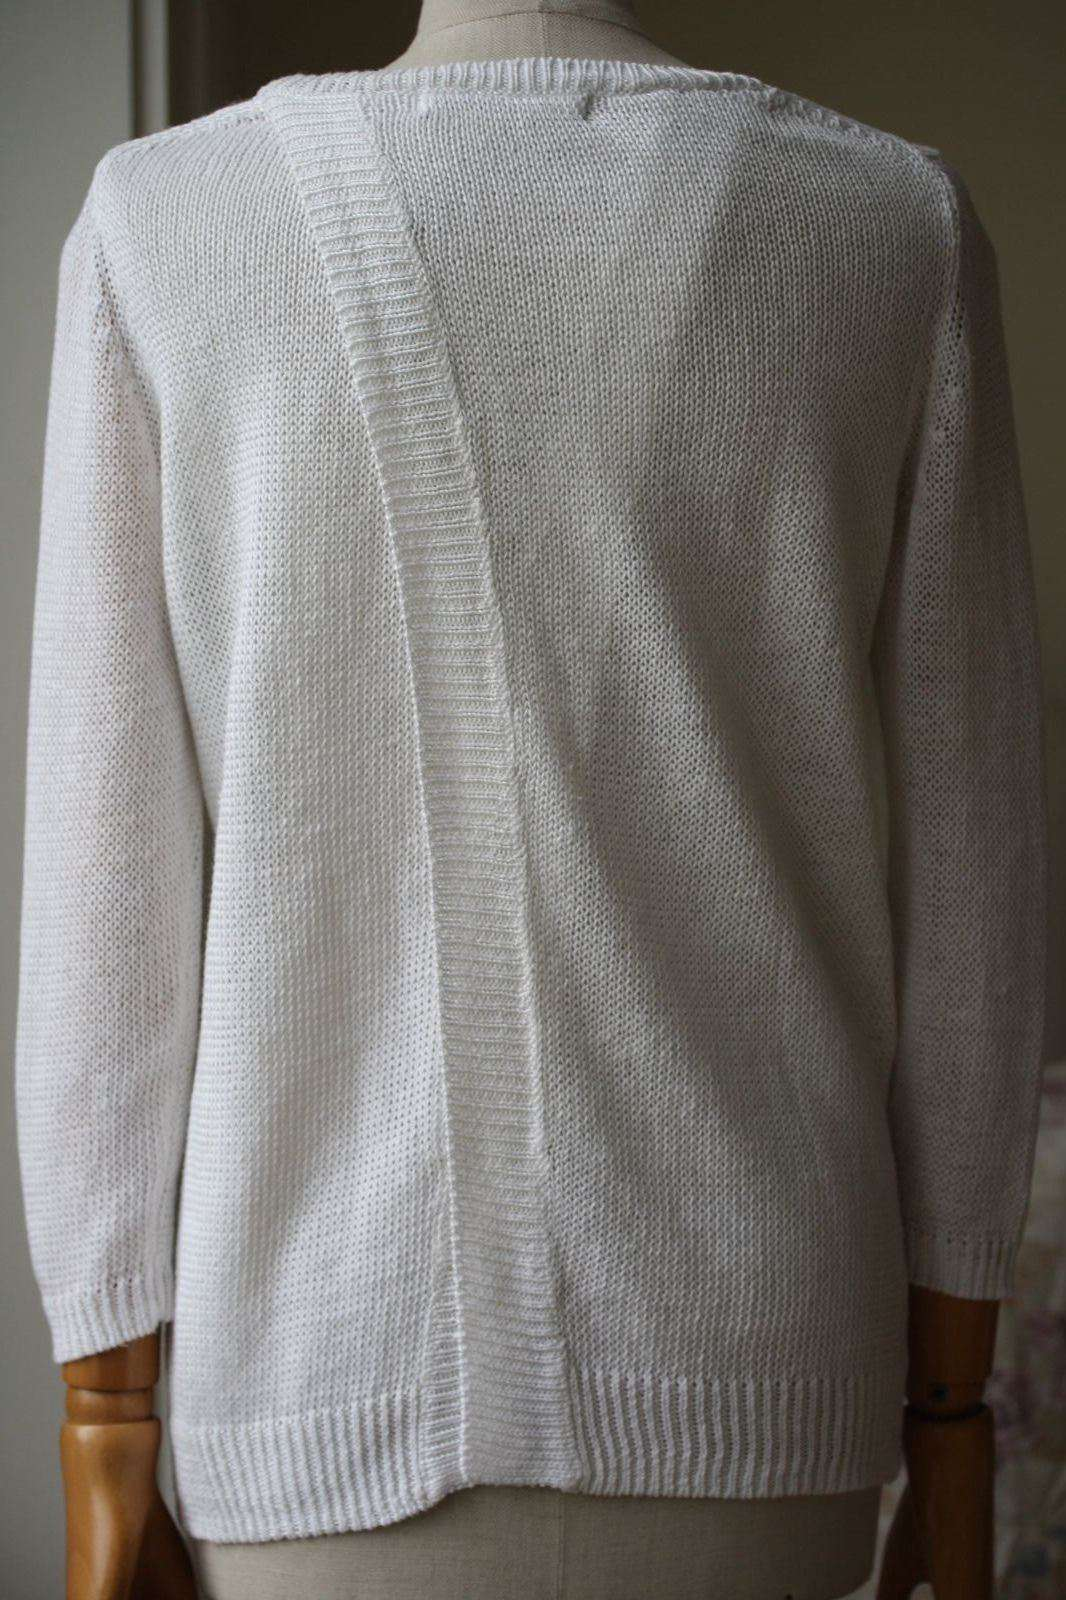 360 SWEATER DRURY CROSS BACK WHITE SWEATER SMALL